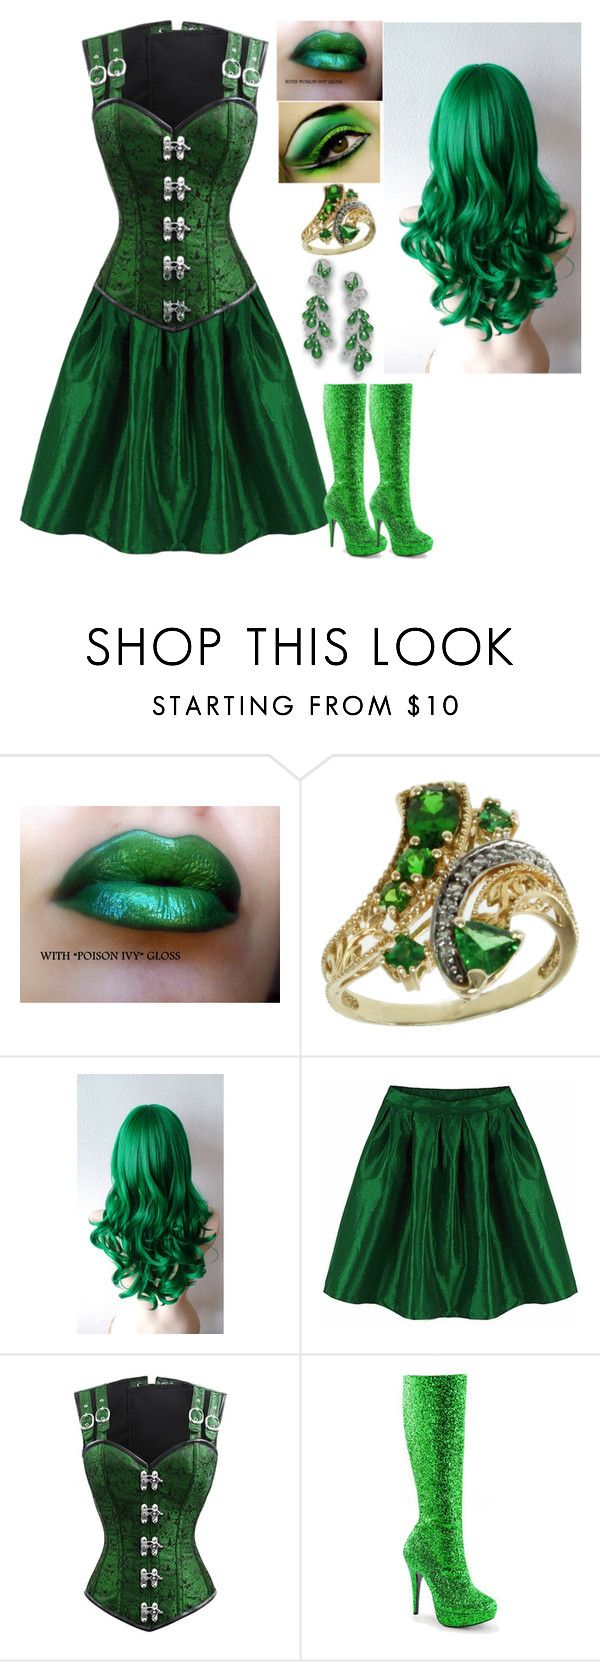 """Seven Deadly Sins: Envy"" by kiara-fleming ❤ liked on Polyvore featuring Michael Valitutti and Funtasma"